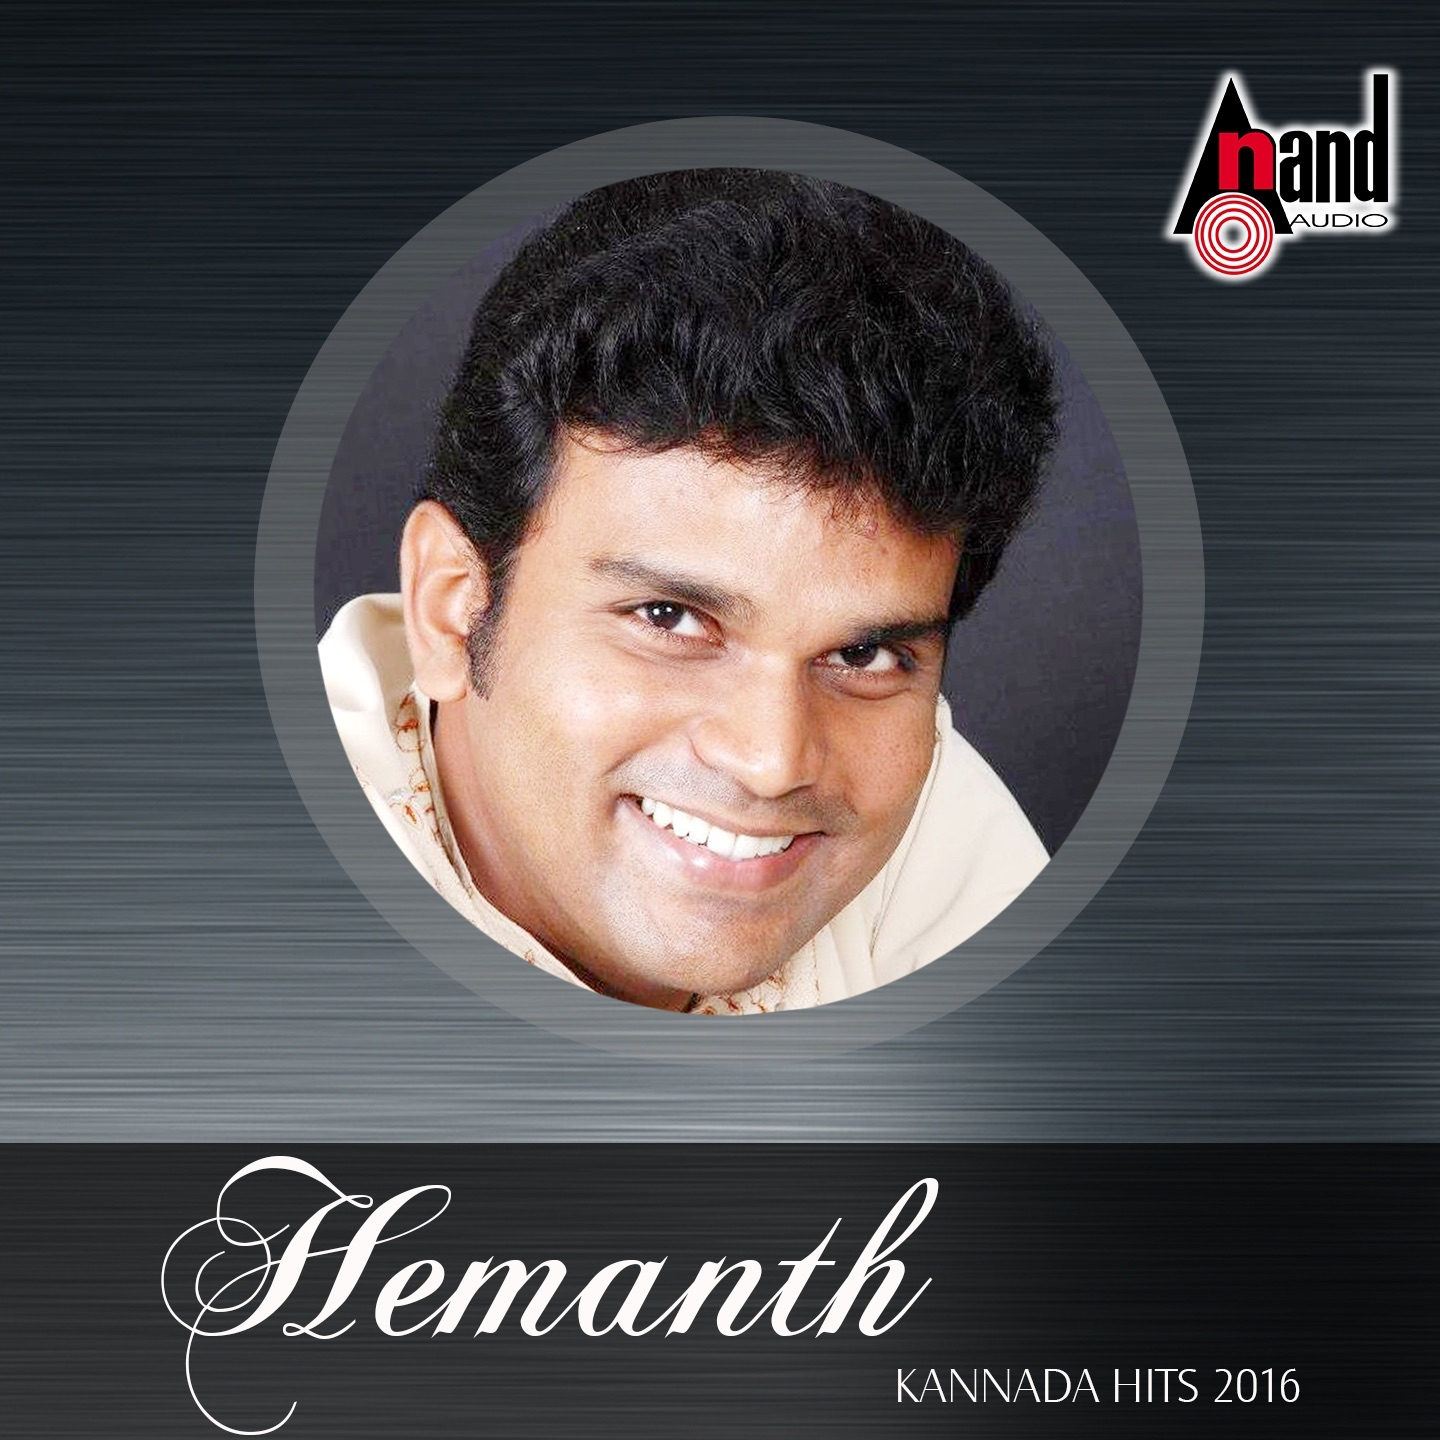 Hemanth - Kannada Hits 2016